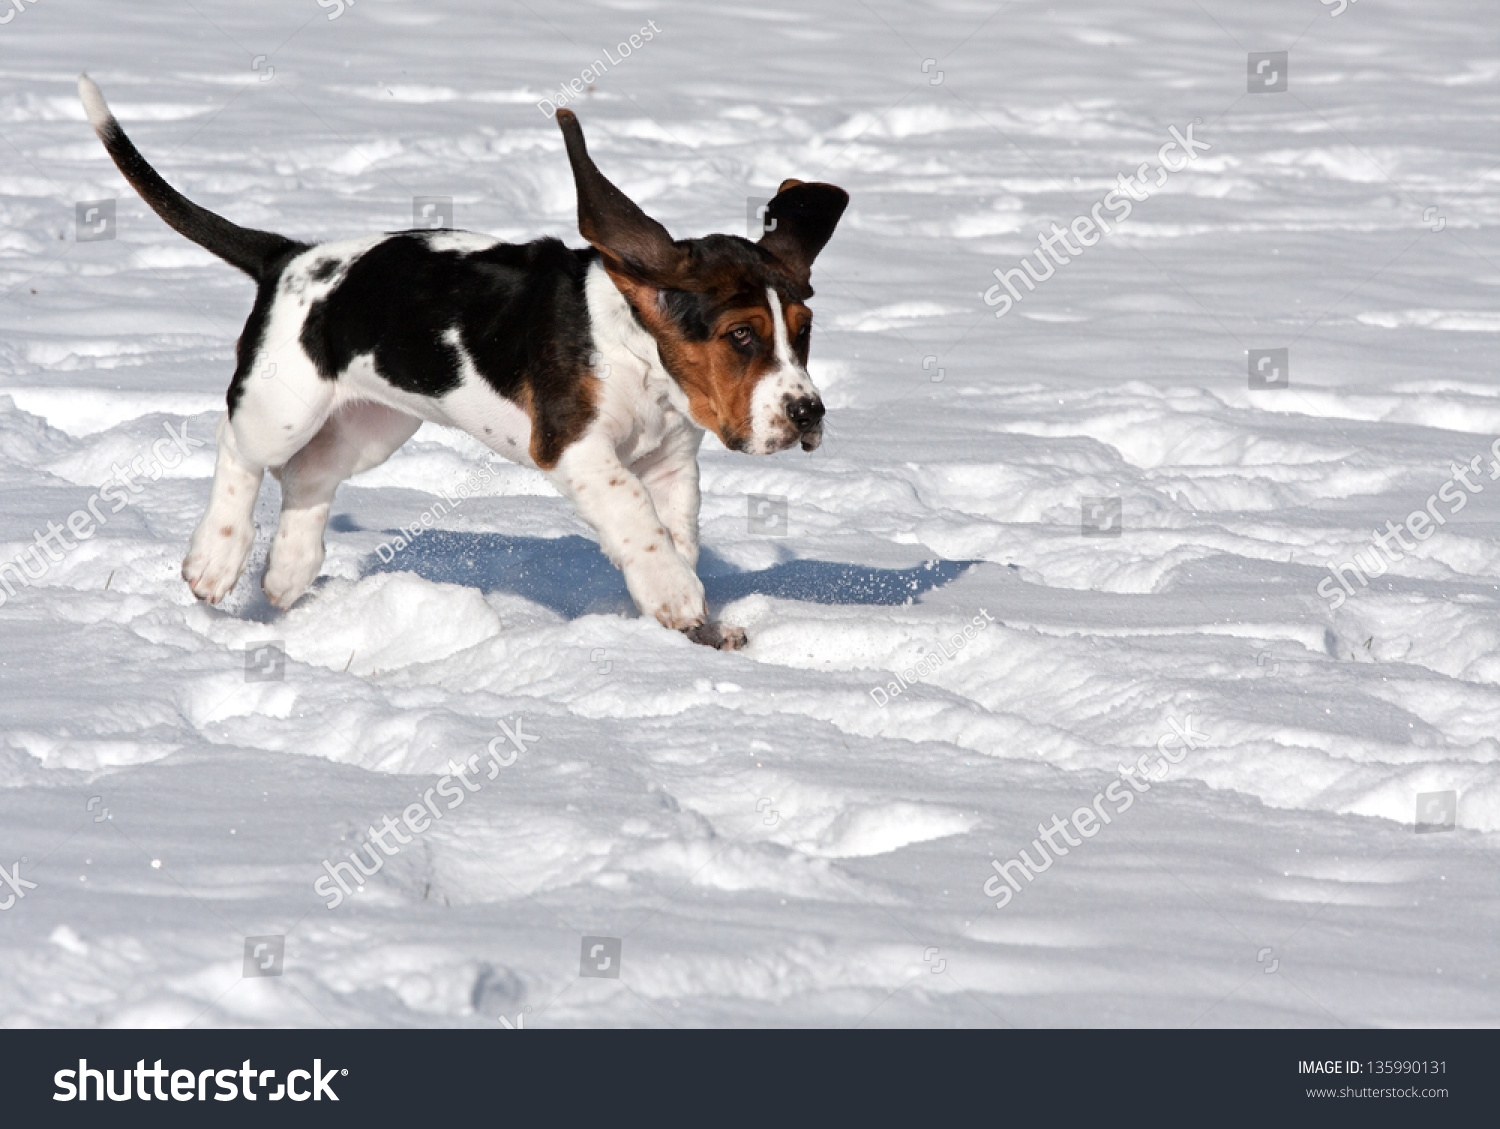 basset hound puppy running in the snow with ears flapping